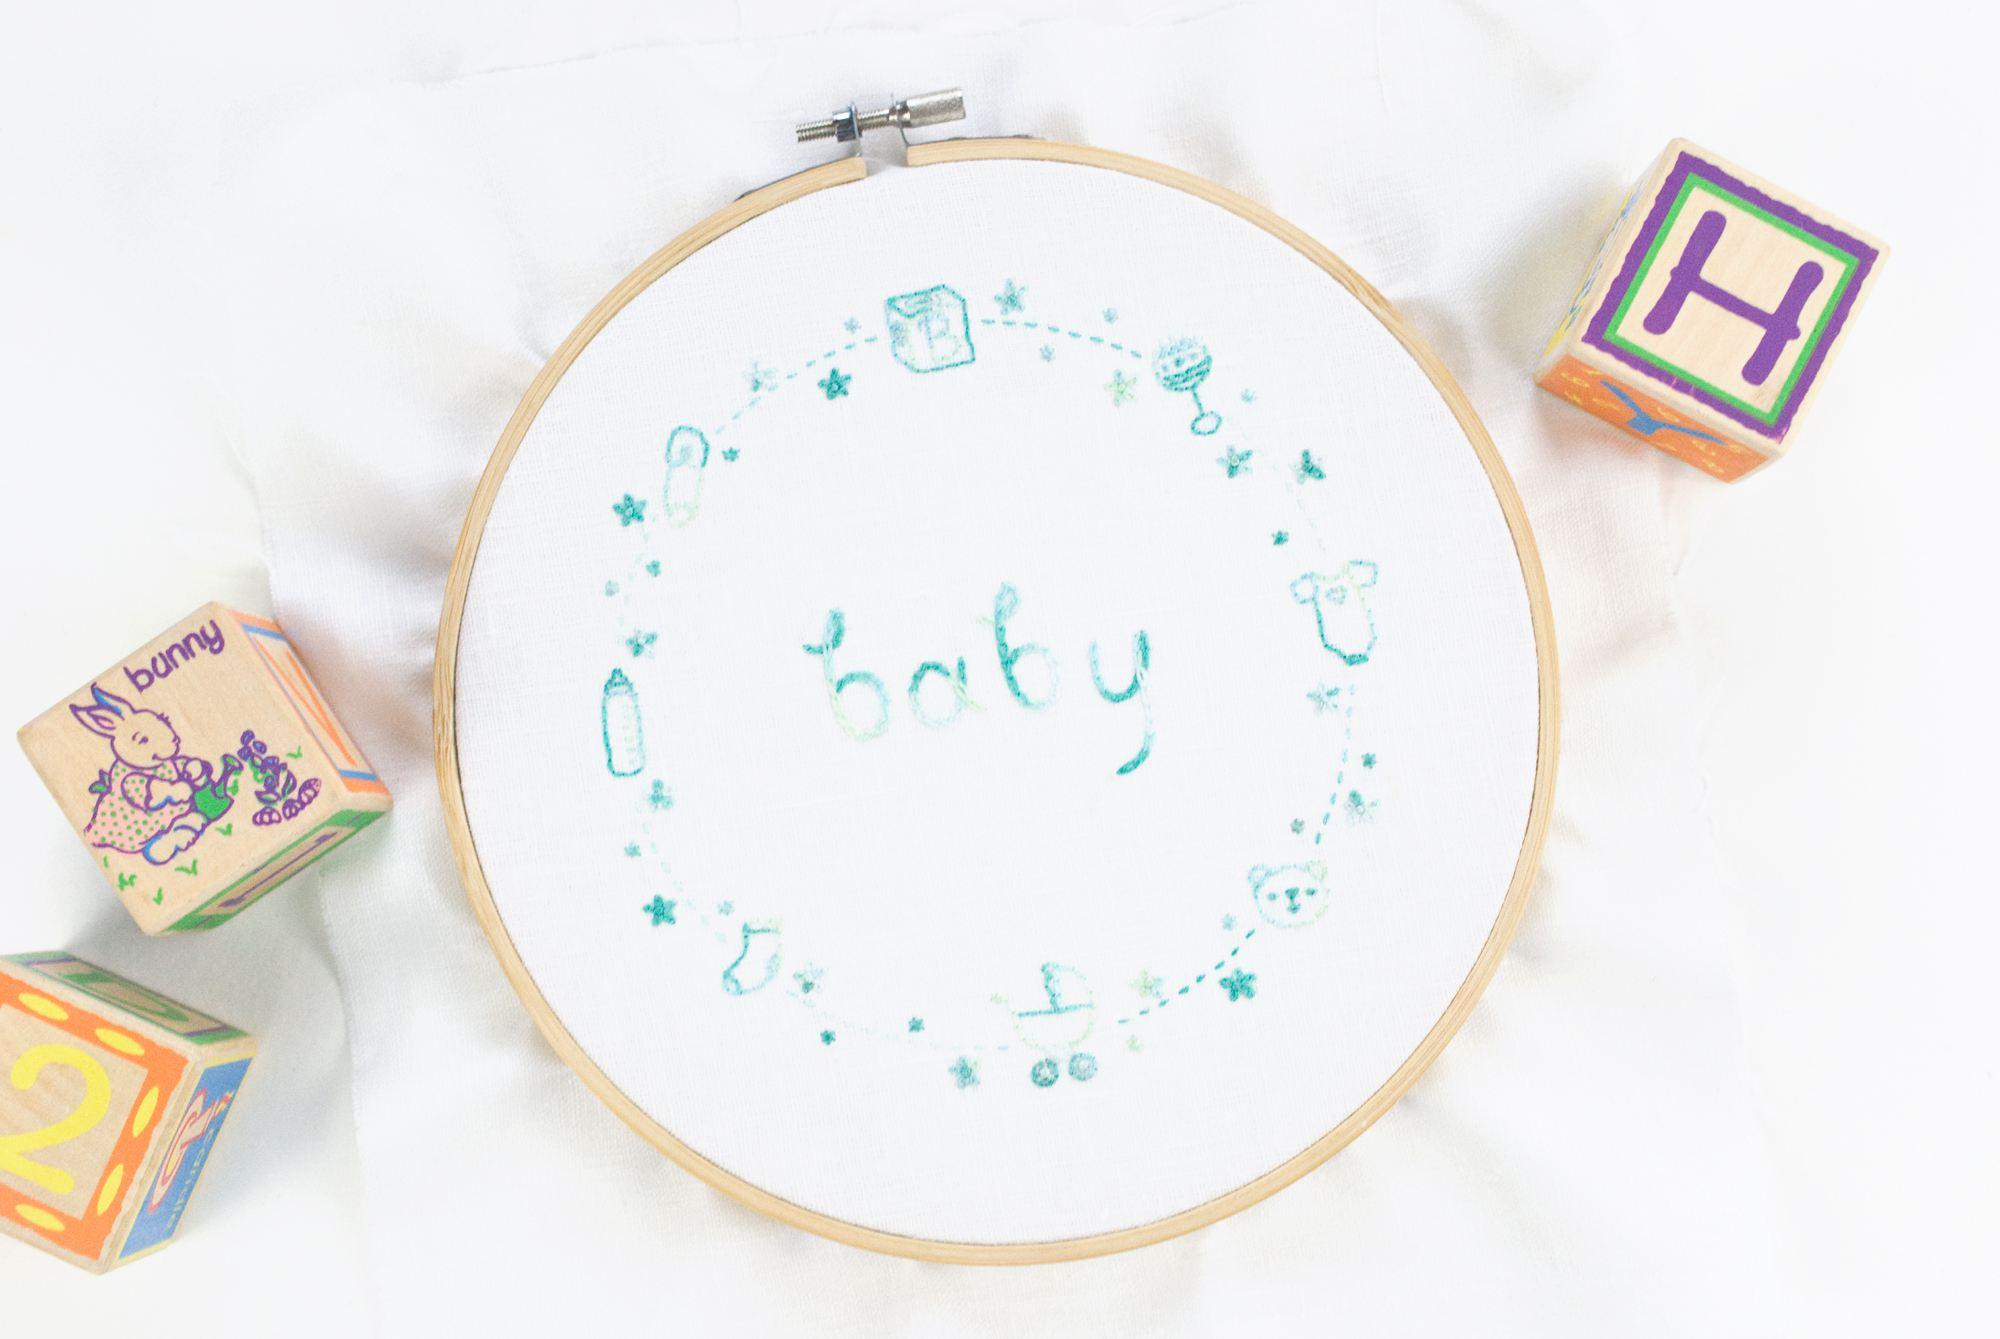 Our Top 25 Free Embroidery Designs